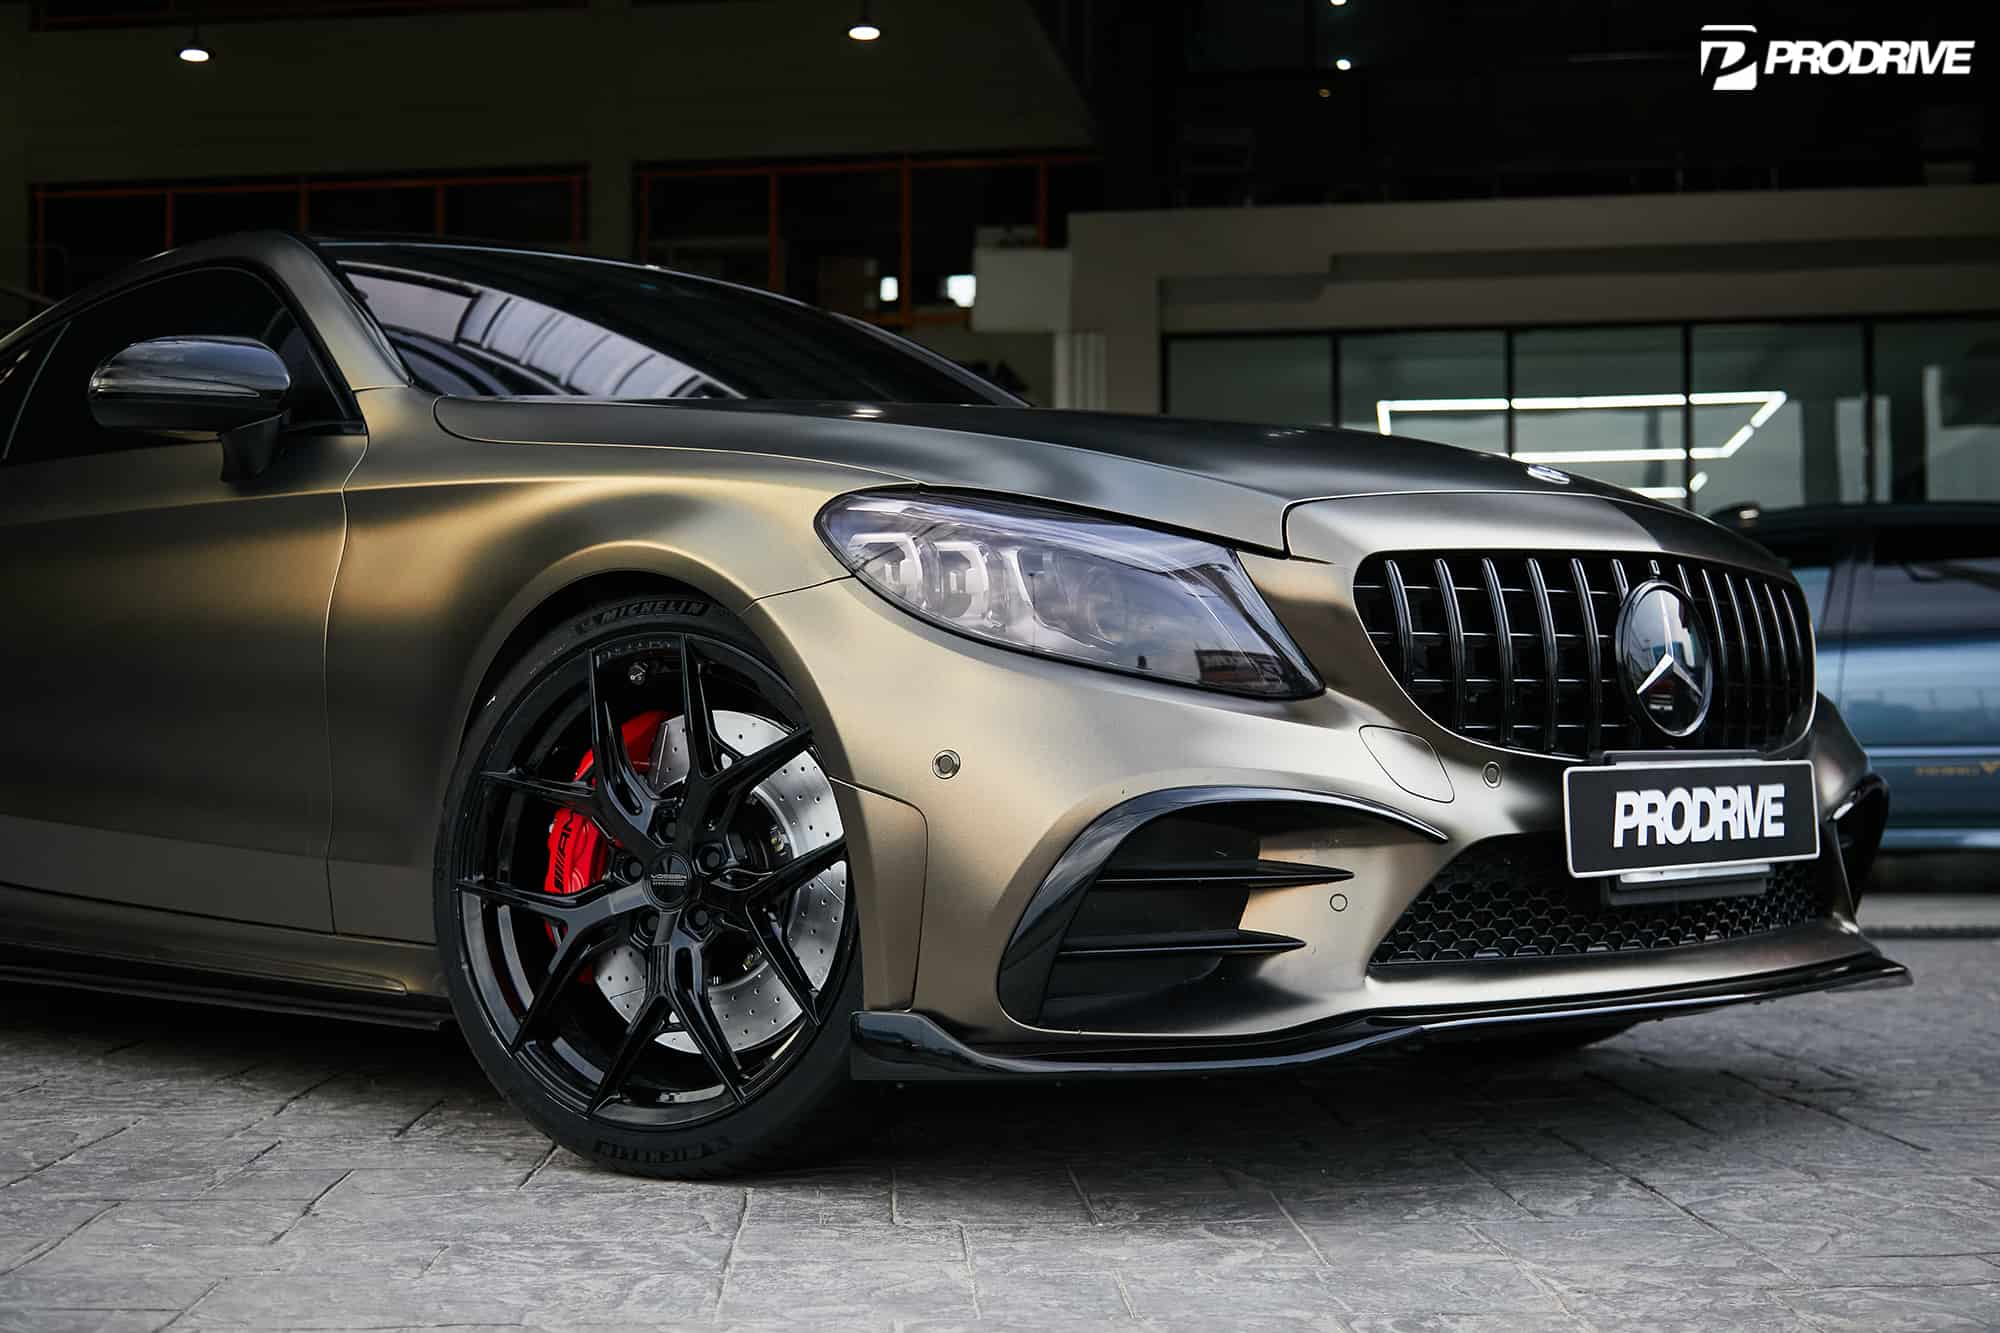 Mercedes C200 Coupe by Prodrive & Vossen Wheels